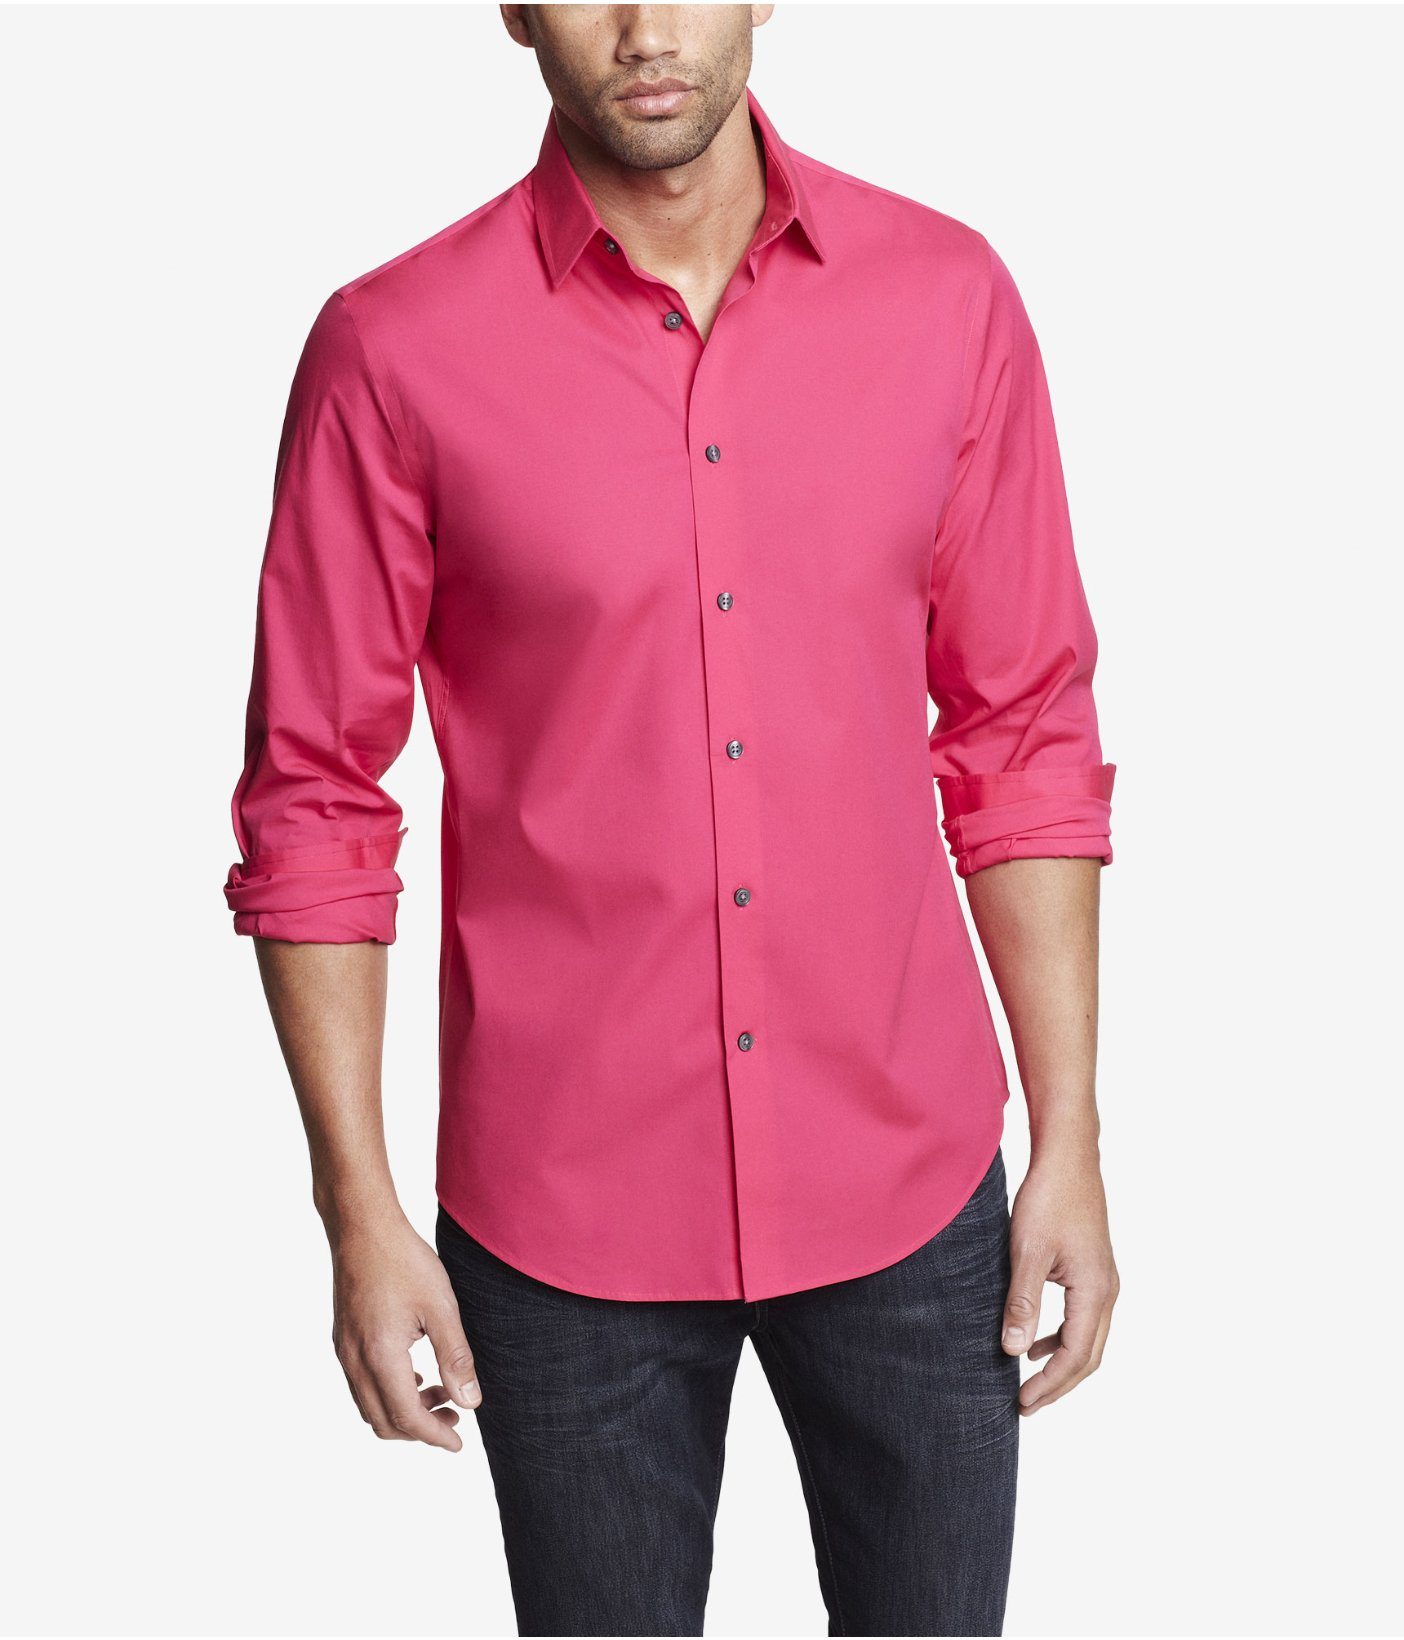 Pink Shirts. invalid category id. Pink Shirts. Showing 22 of 22 results that match your query. Search Product Result. Product - Trolling Slam Bull Dolphin Wahoo Yellowfin Fishing Long Sleeve T-Shirt. California Cali Bear Pink Paisley Mens Shirts. Add To Cart. There is .